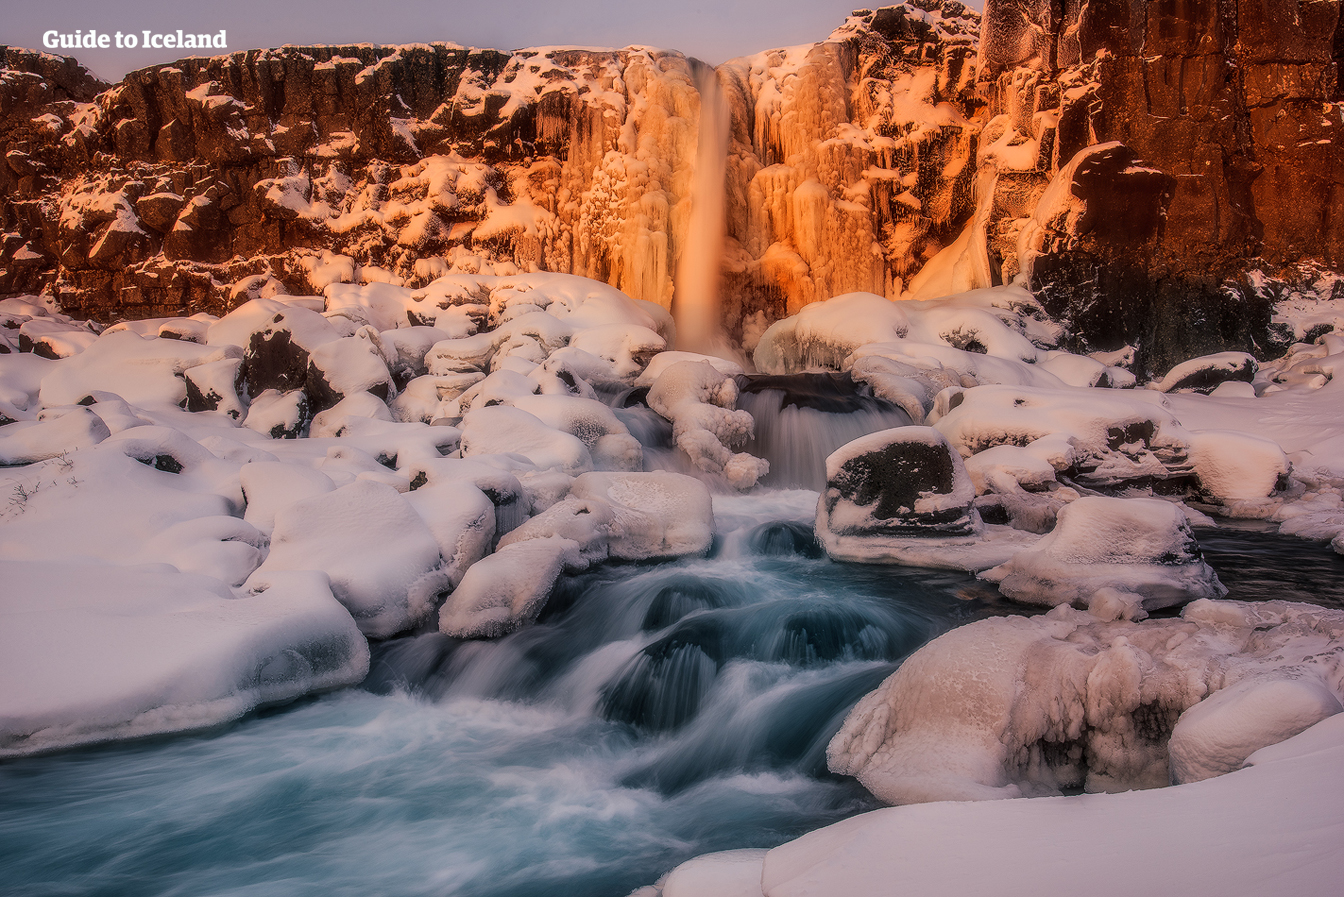 The Golden Circle route offers more than just the three main attractions. Oxarafoss is a waterfall nestled in the valley of Thingvellir National Park.